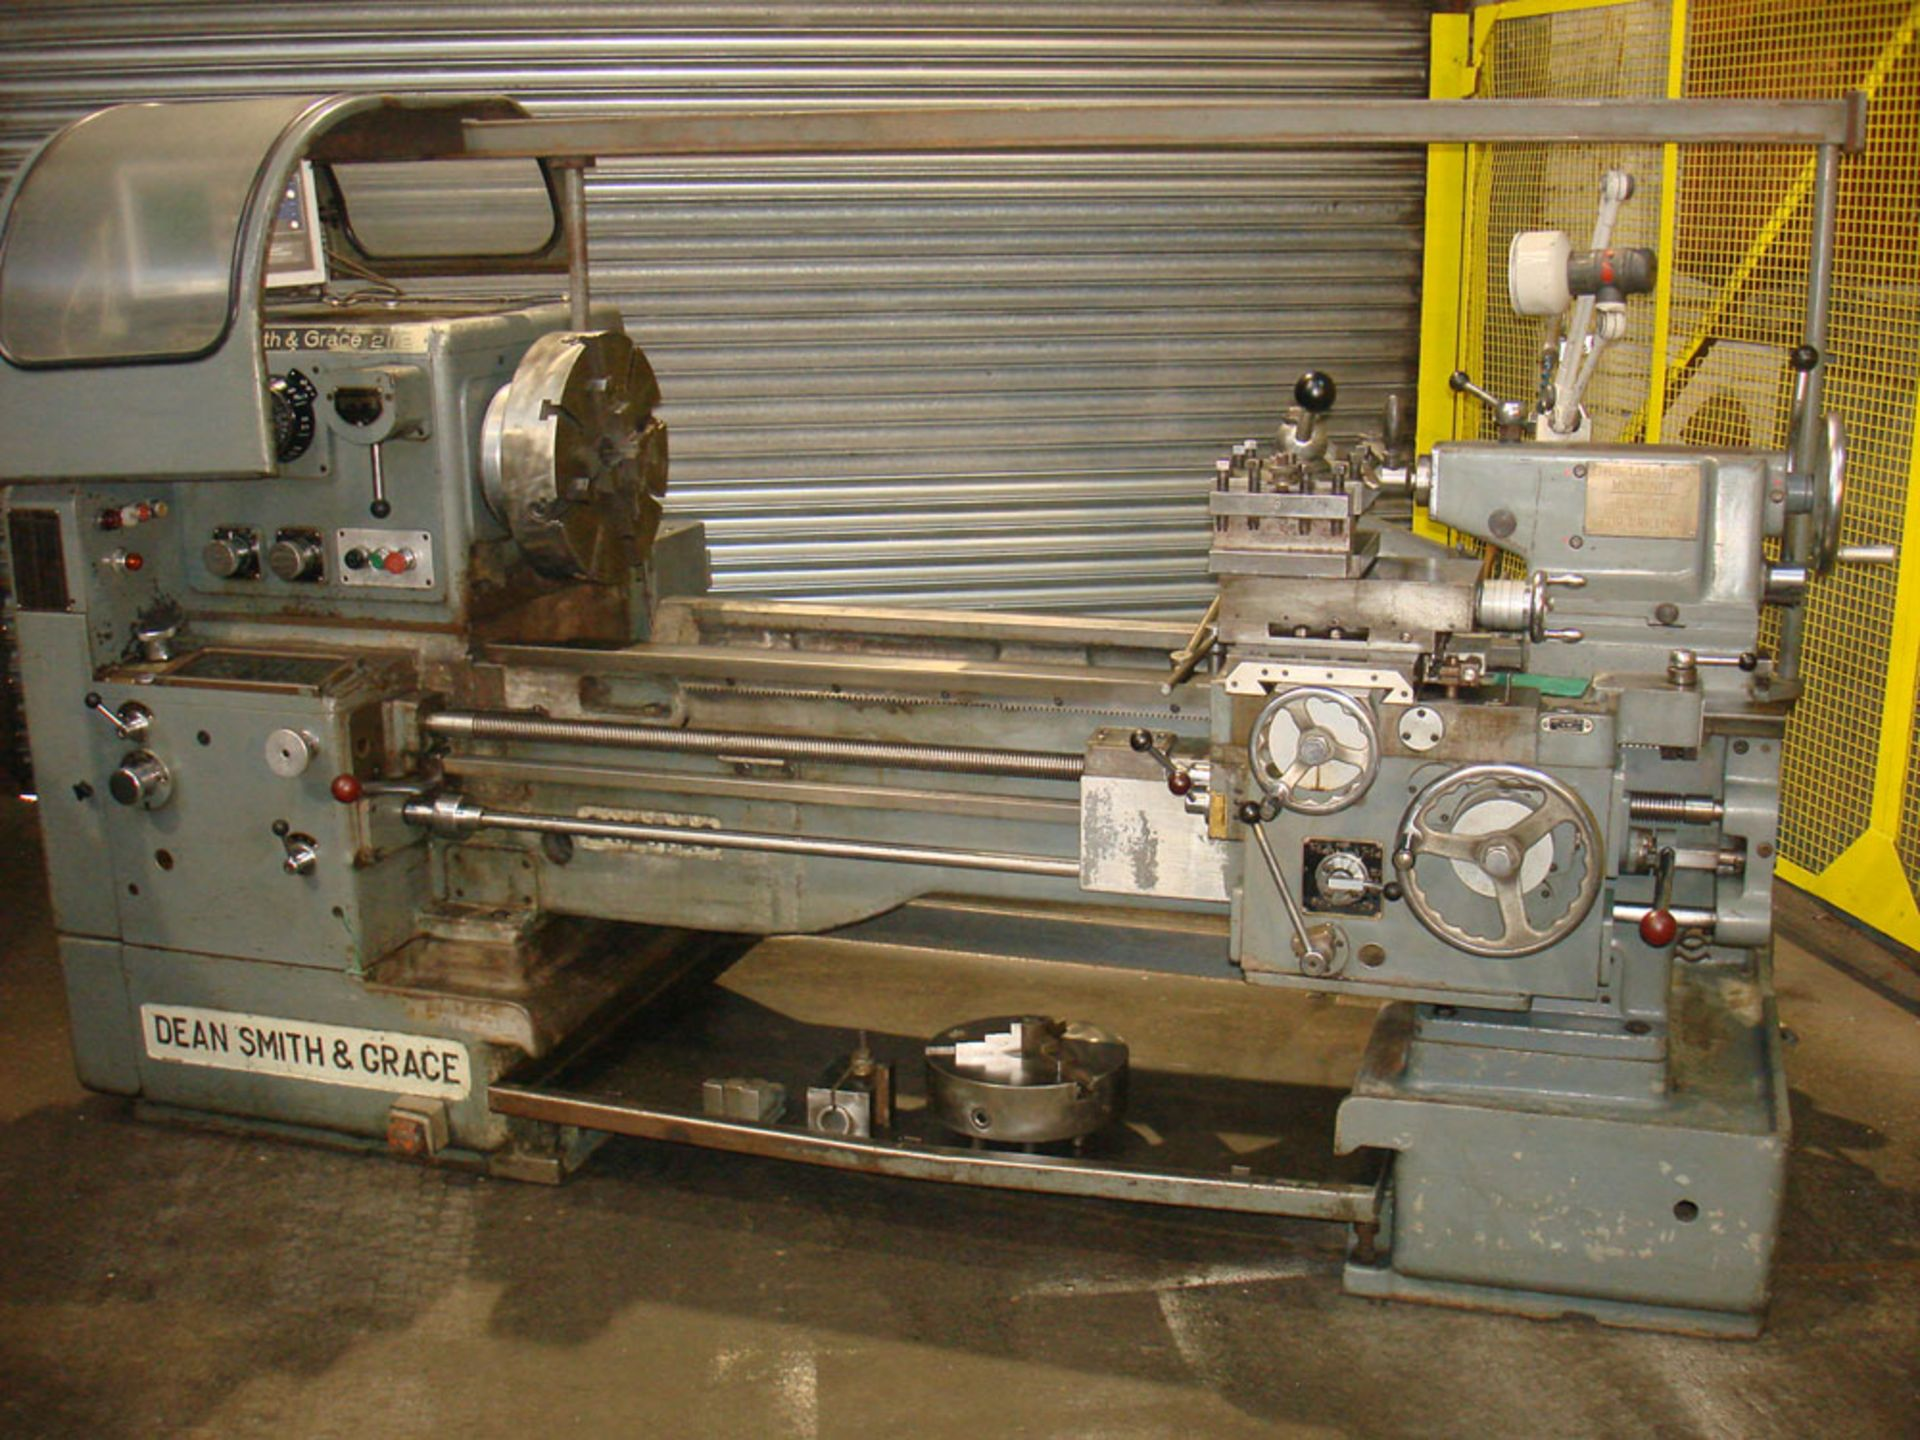 """Dean Smith & Grace 2112 x 50 Gap Bed Centre Lathe. Swing Over Bed 21"""". Distance Between Centres 50"""". - Image 5 of 9"""